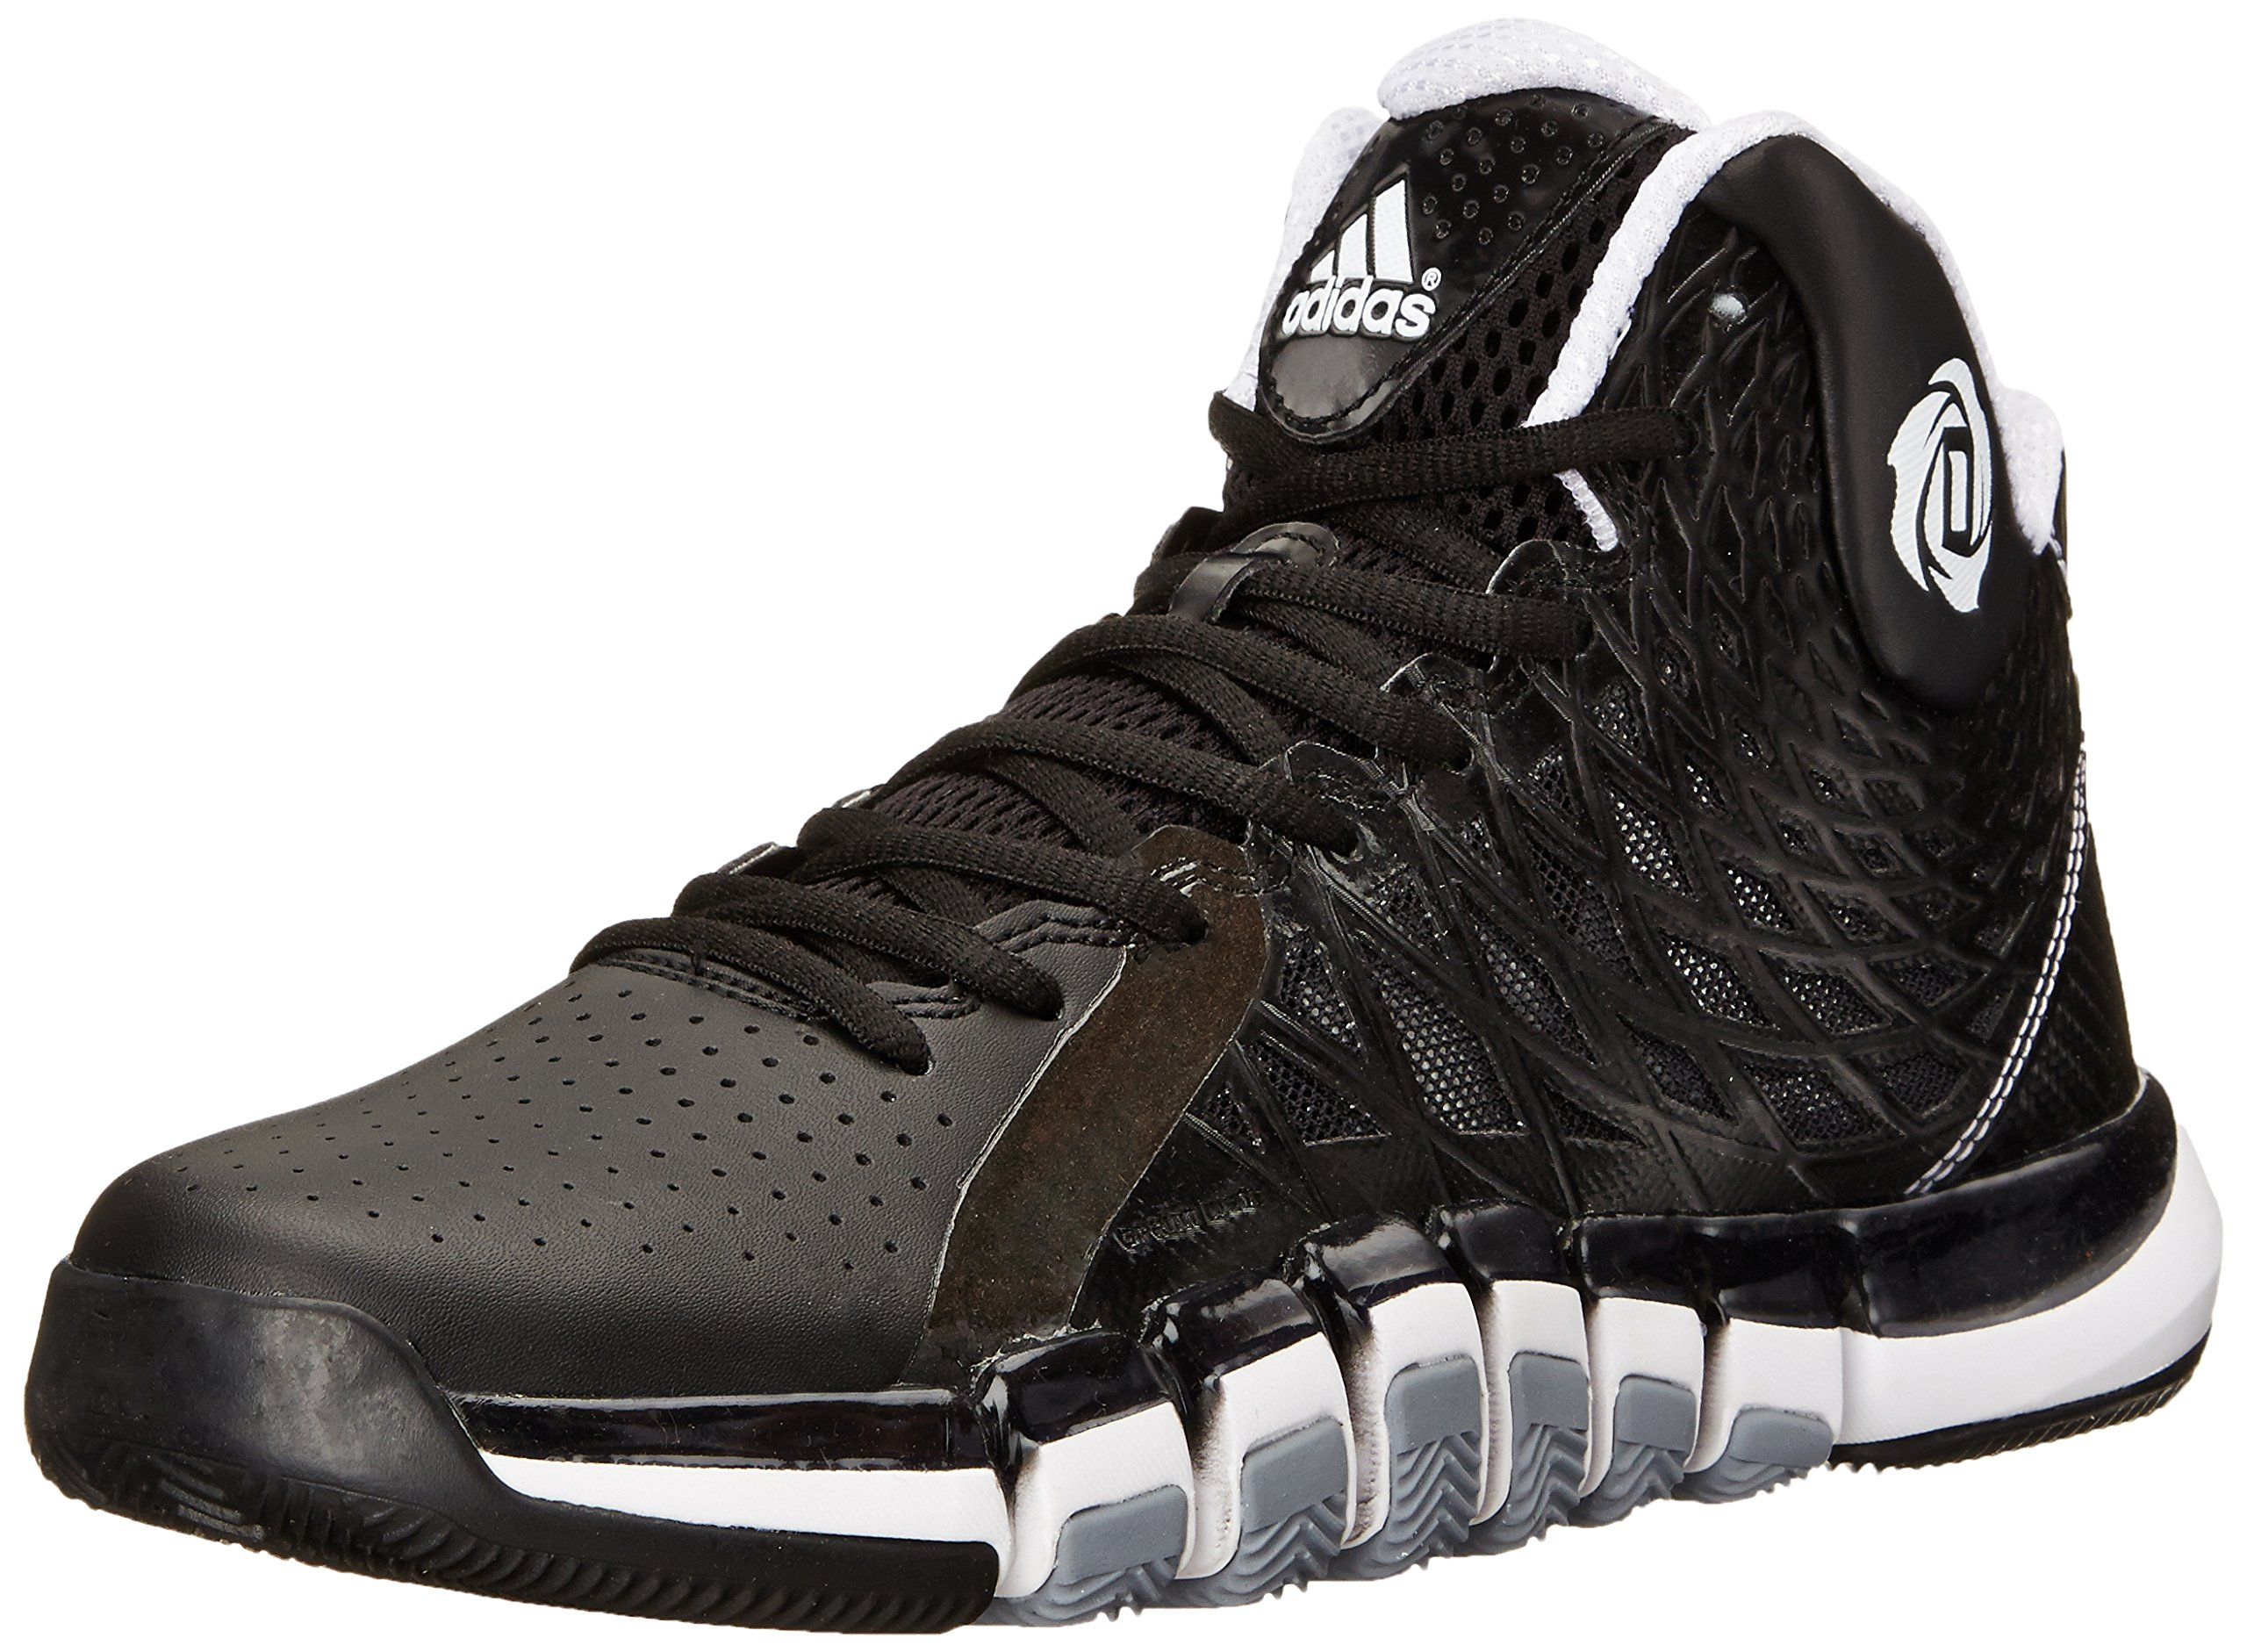 b3d1cbf082f Galleon - Adidas Performance Men s D Rose 773 II Basketball Shoe ...